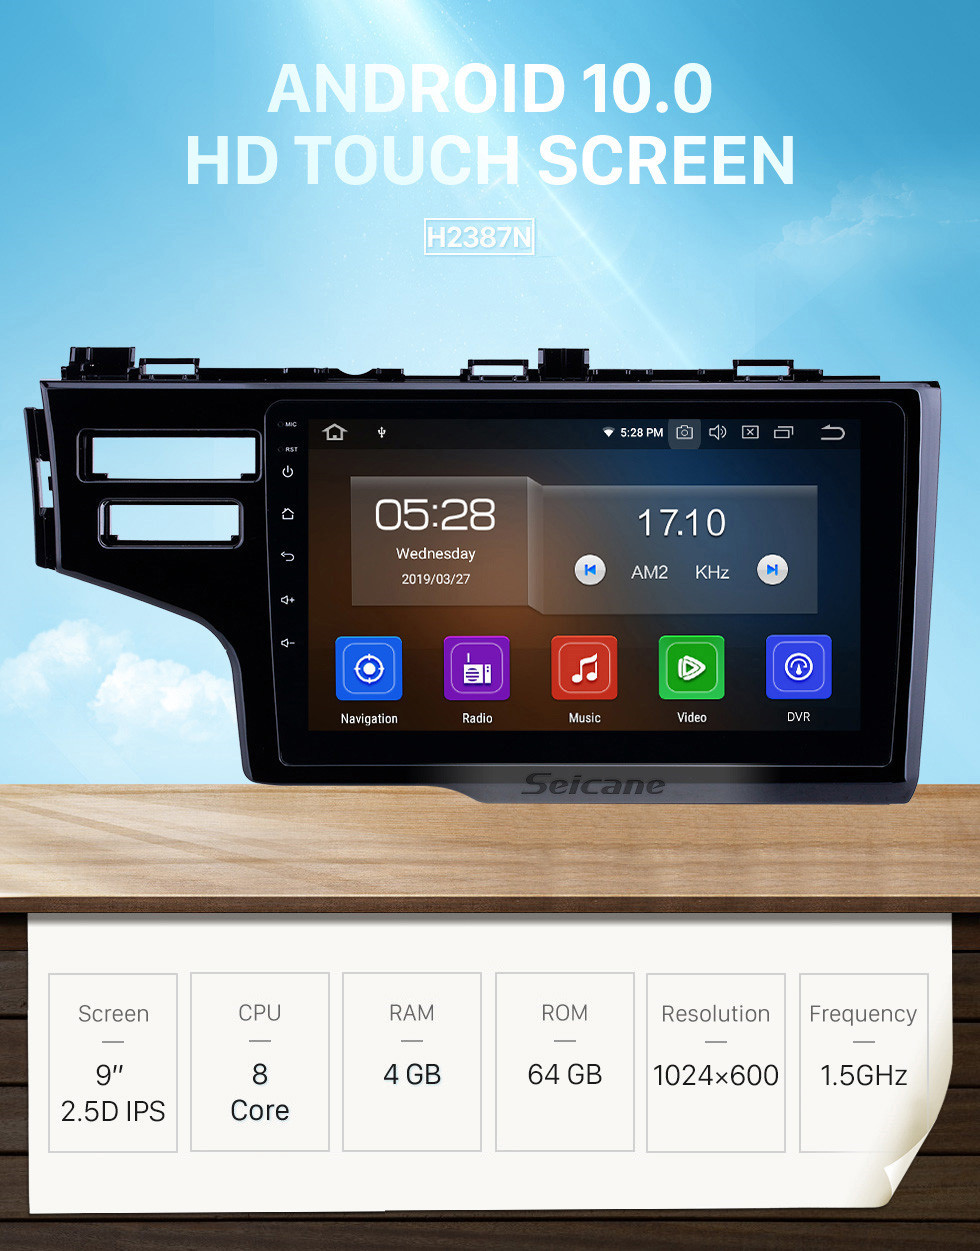 Seicane OEM 9 inch Android 10.0 for 2013-2015 Honda Fit LHD Bluetooth HD Touchscreen GPS Navigation Radio Carplay support TPMS Digital TV